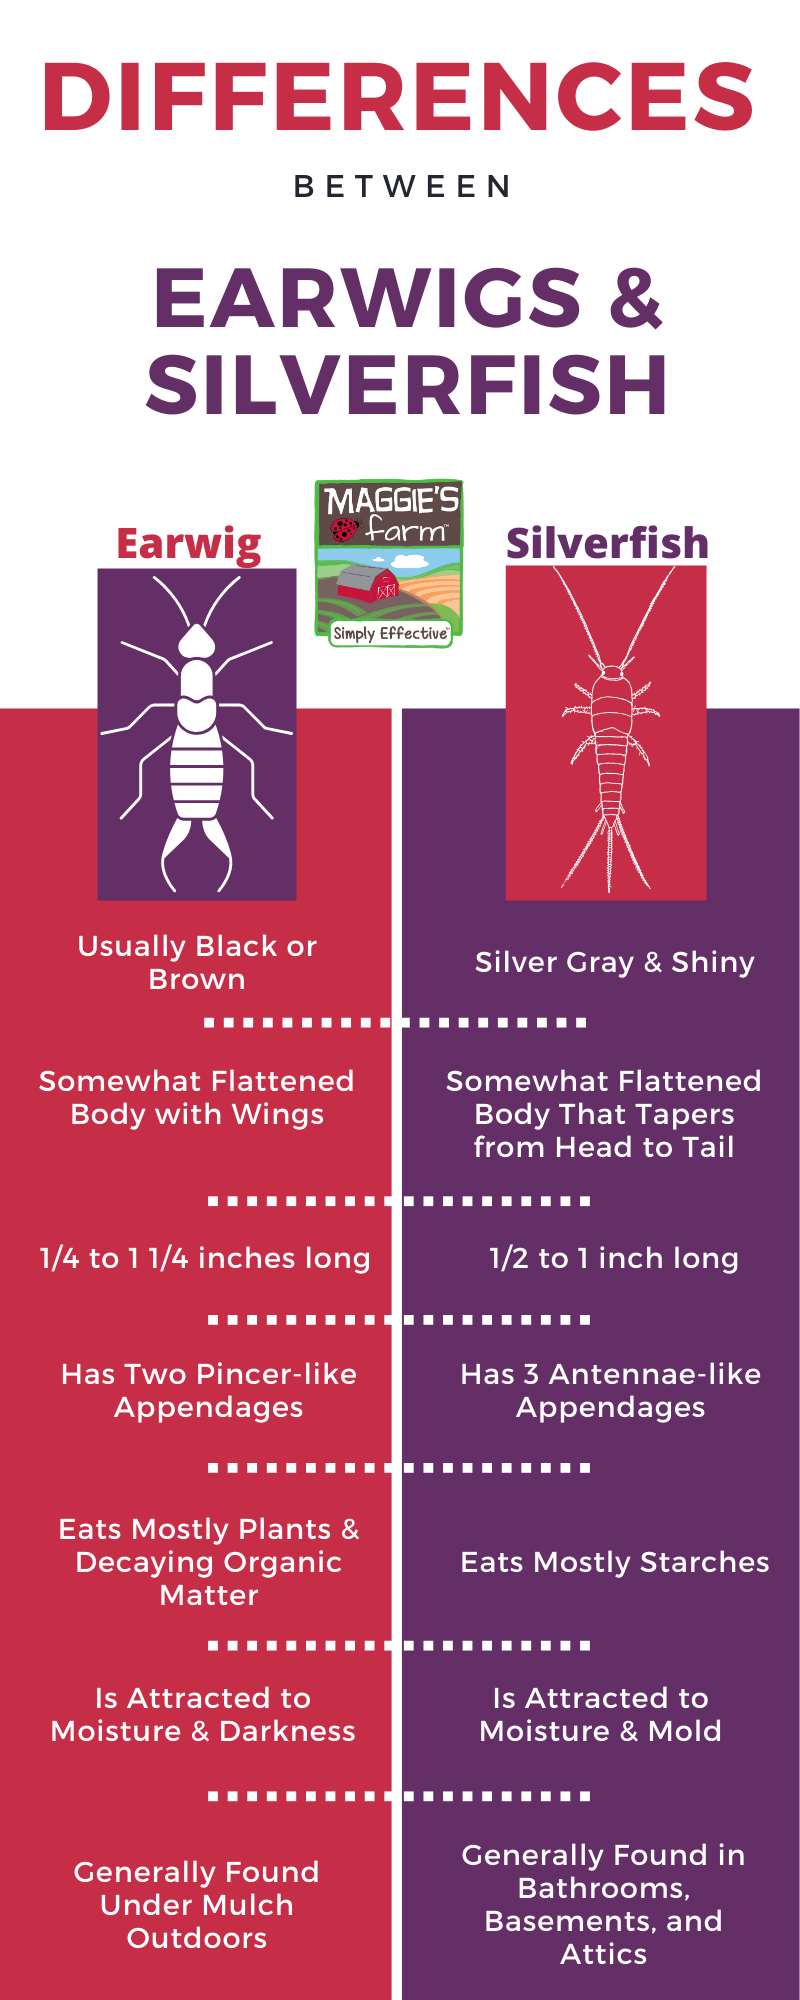 Difference Between Earwigs & Silverfish